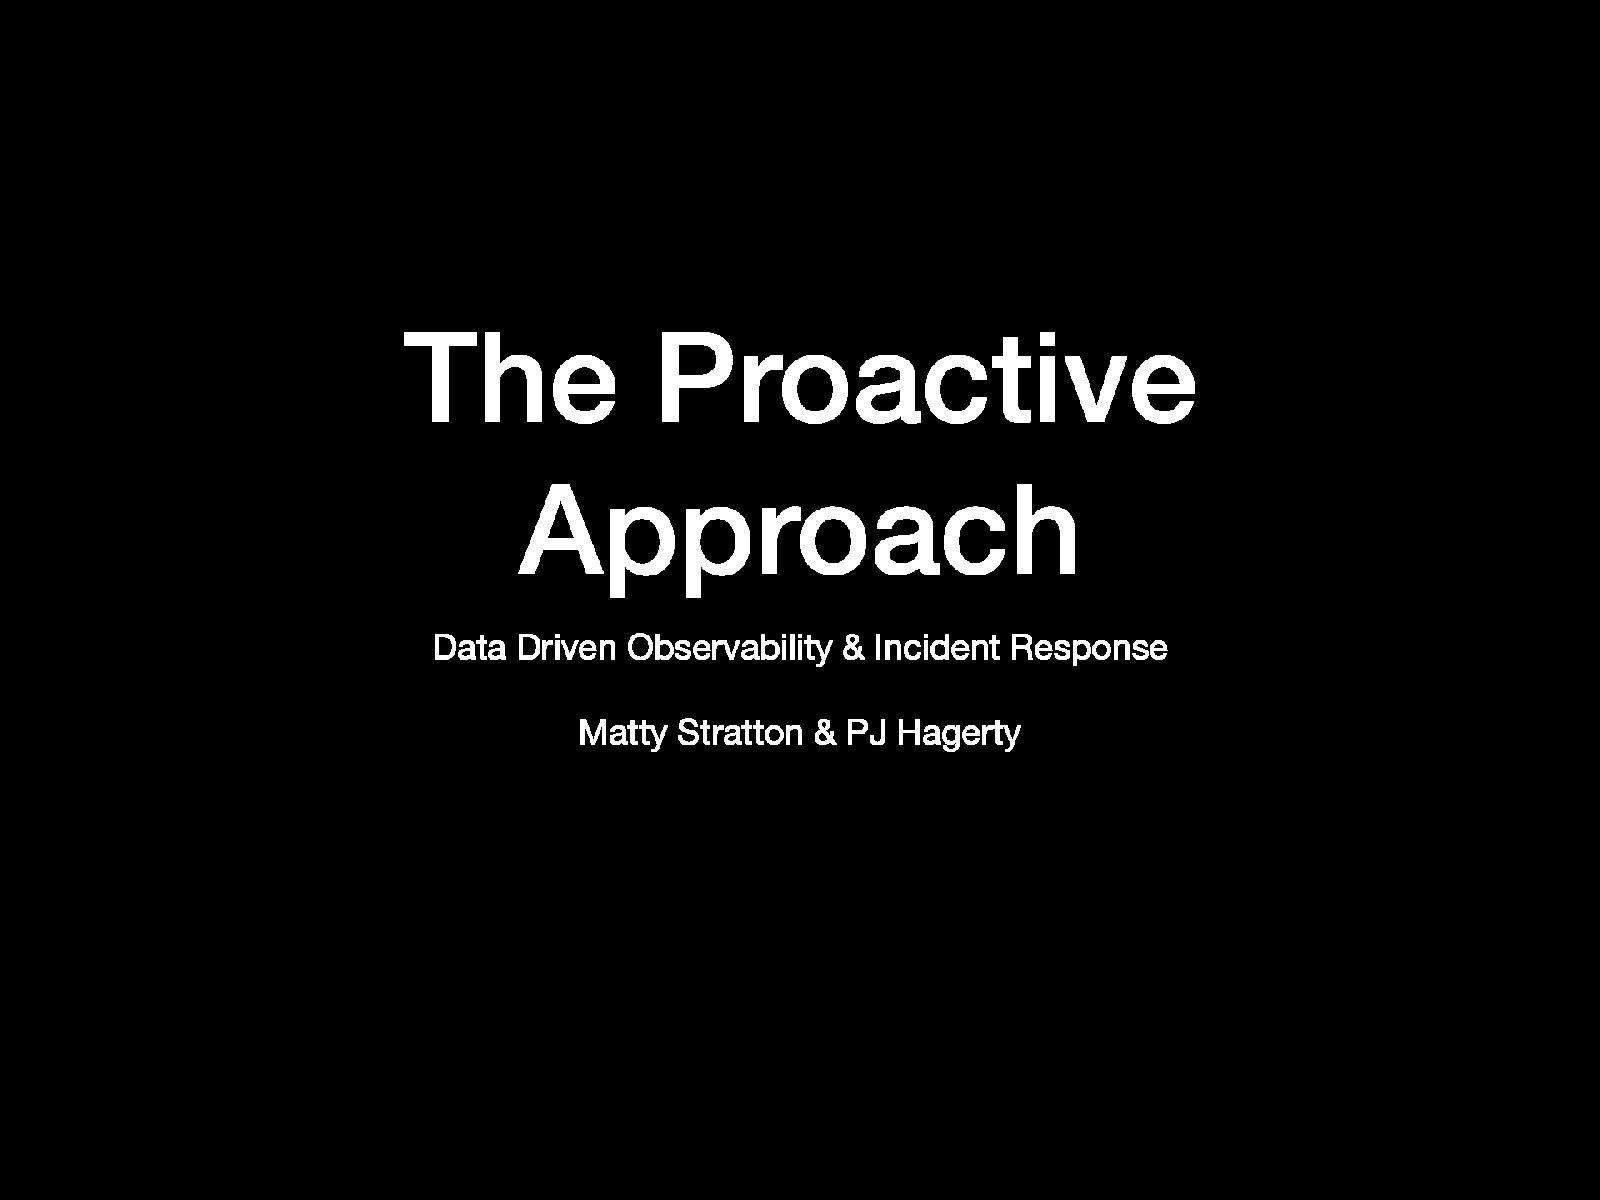 The Proactive Approach: Data Driven Observability & Incident Response